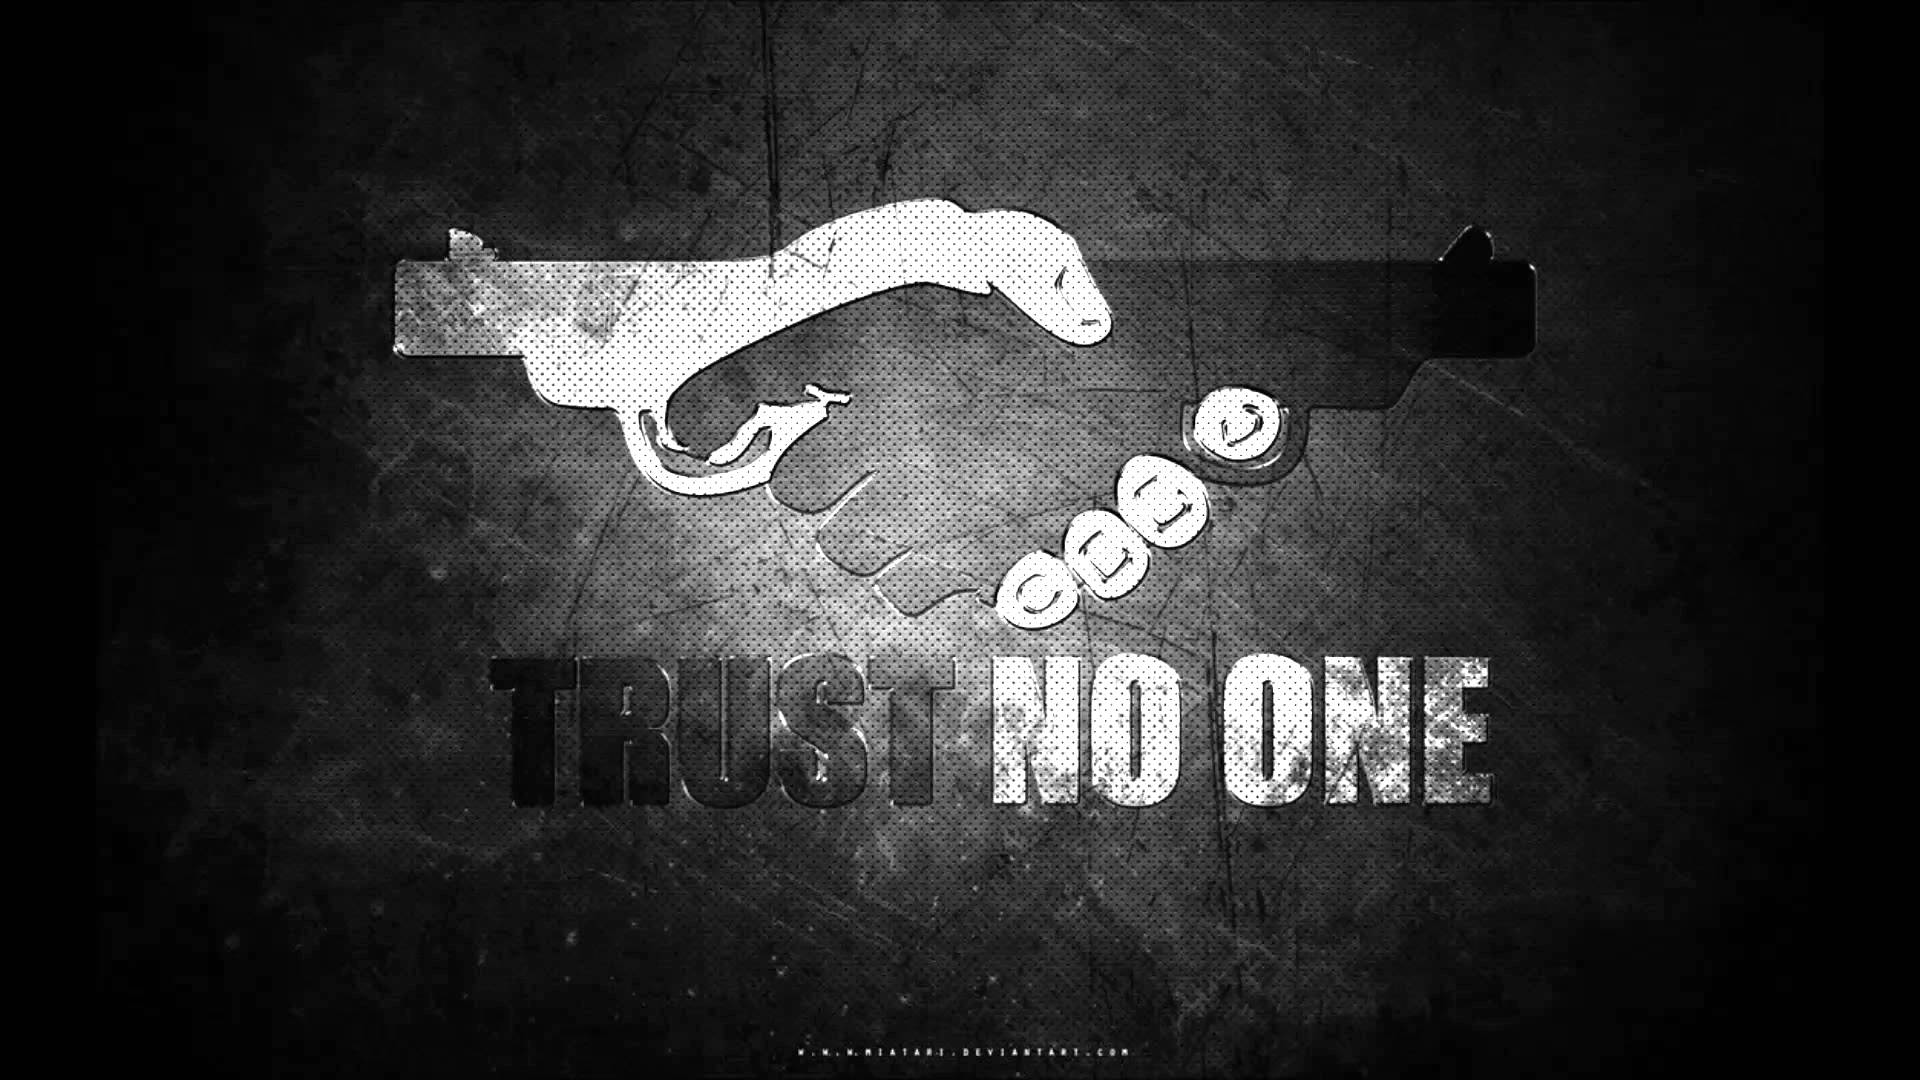 Tamil Quotes Mobile Wallpapers Download Trust No One Wallpaper Gallery